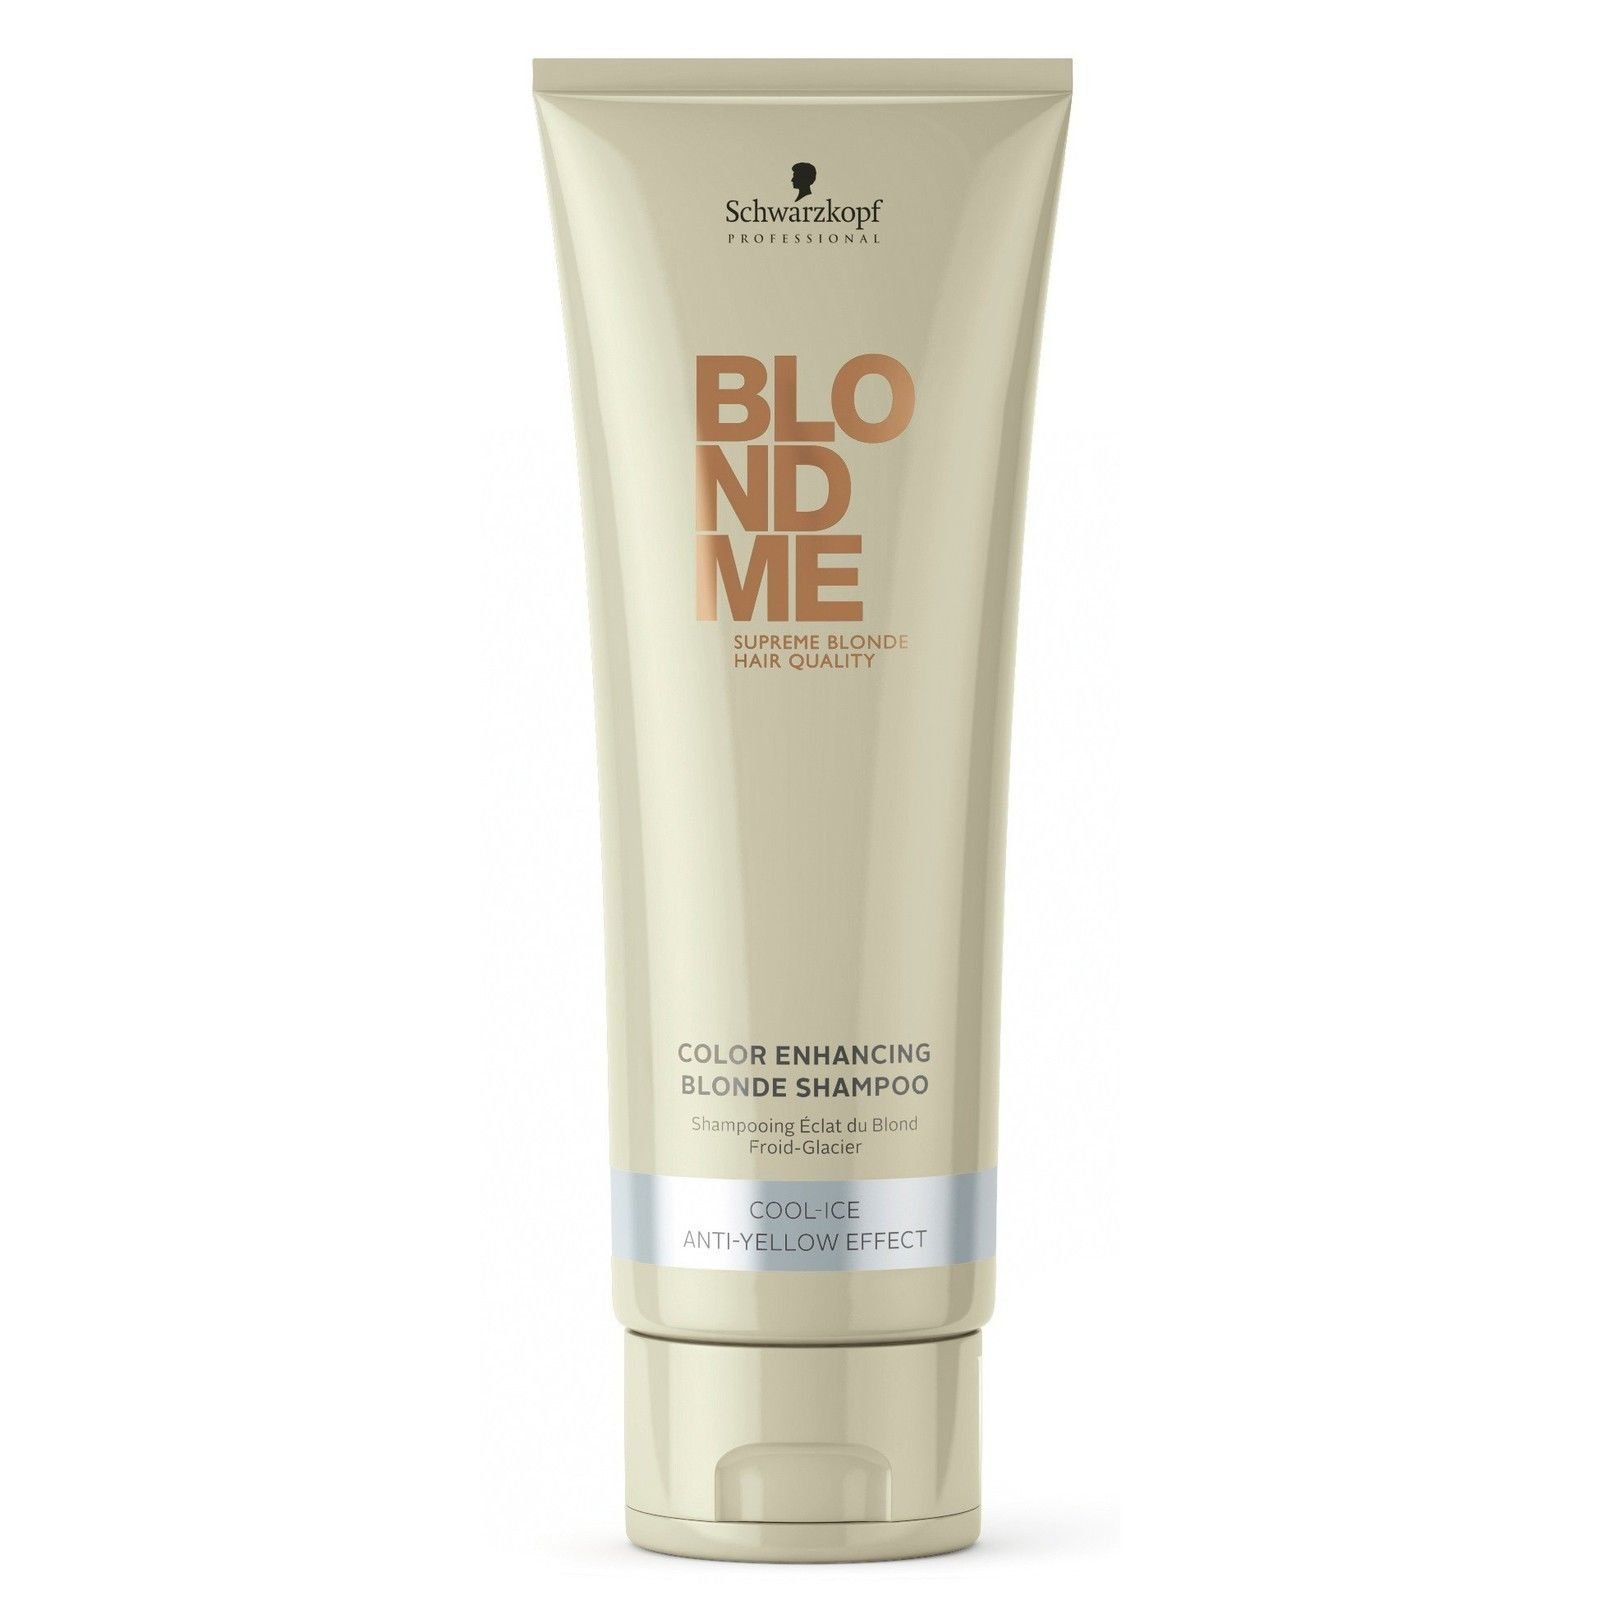 Schwarzkopf Blondme Color Enhancing Blonde Shampoo - Cool Ice 8.45 Anti-yellow